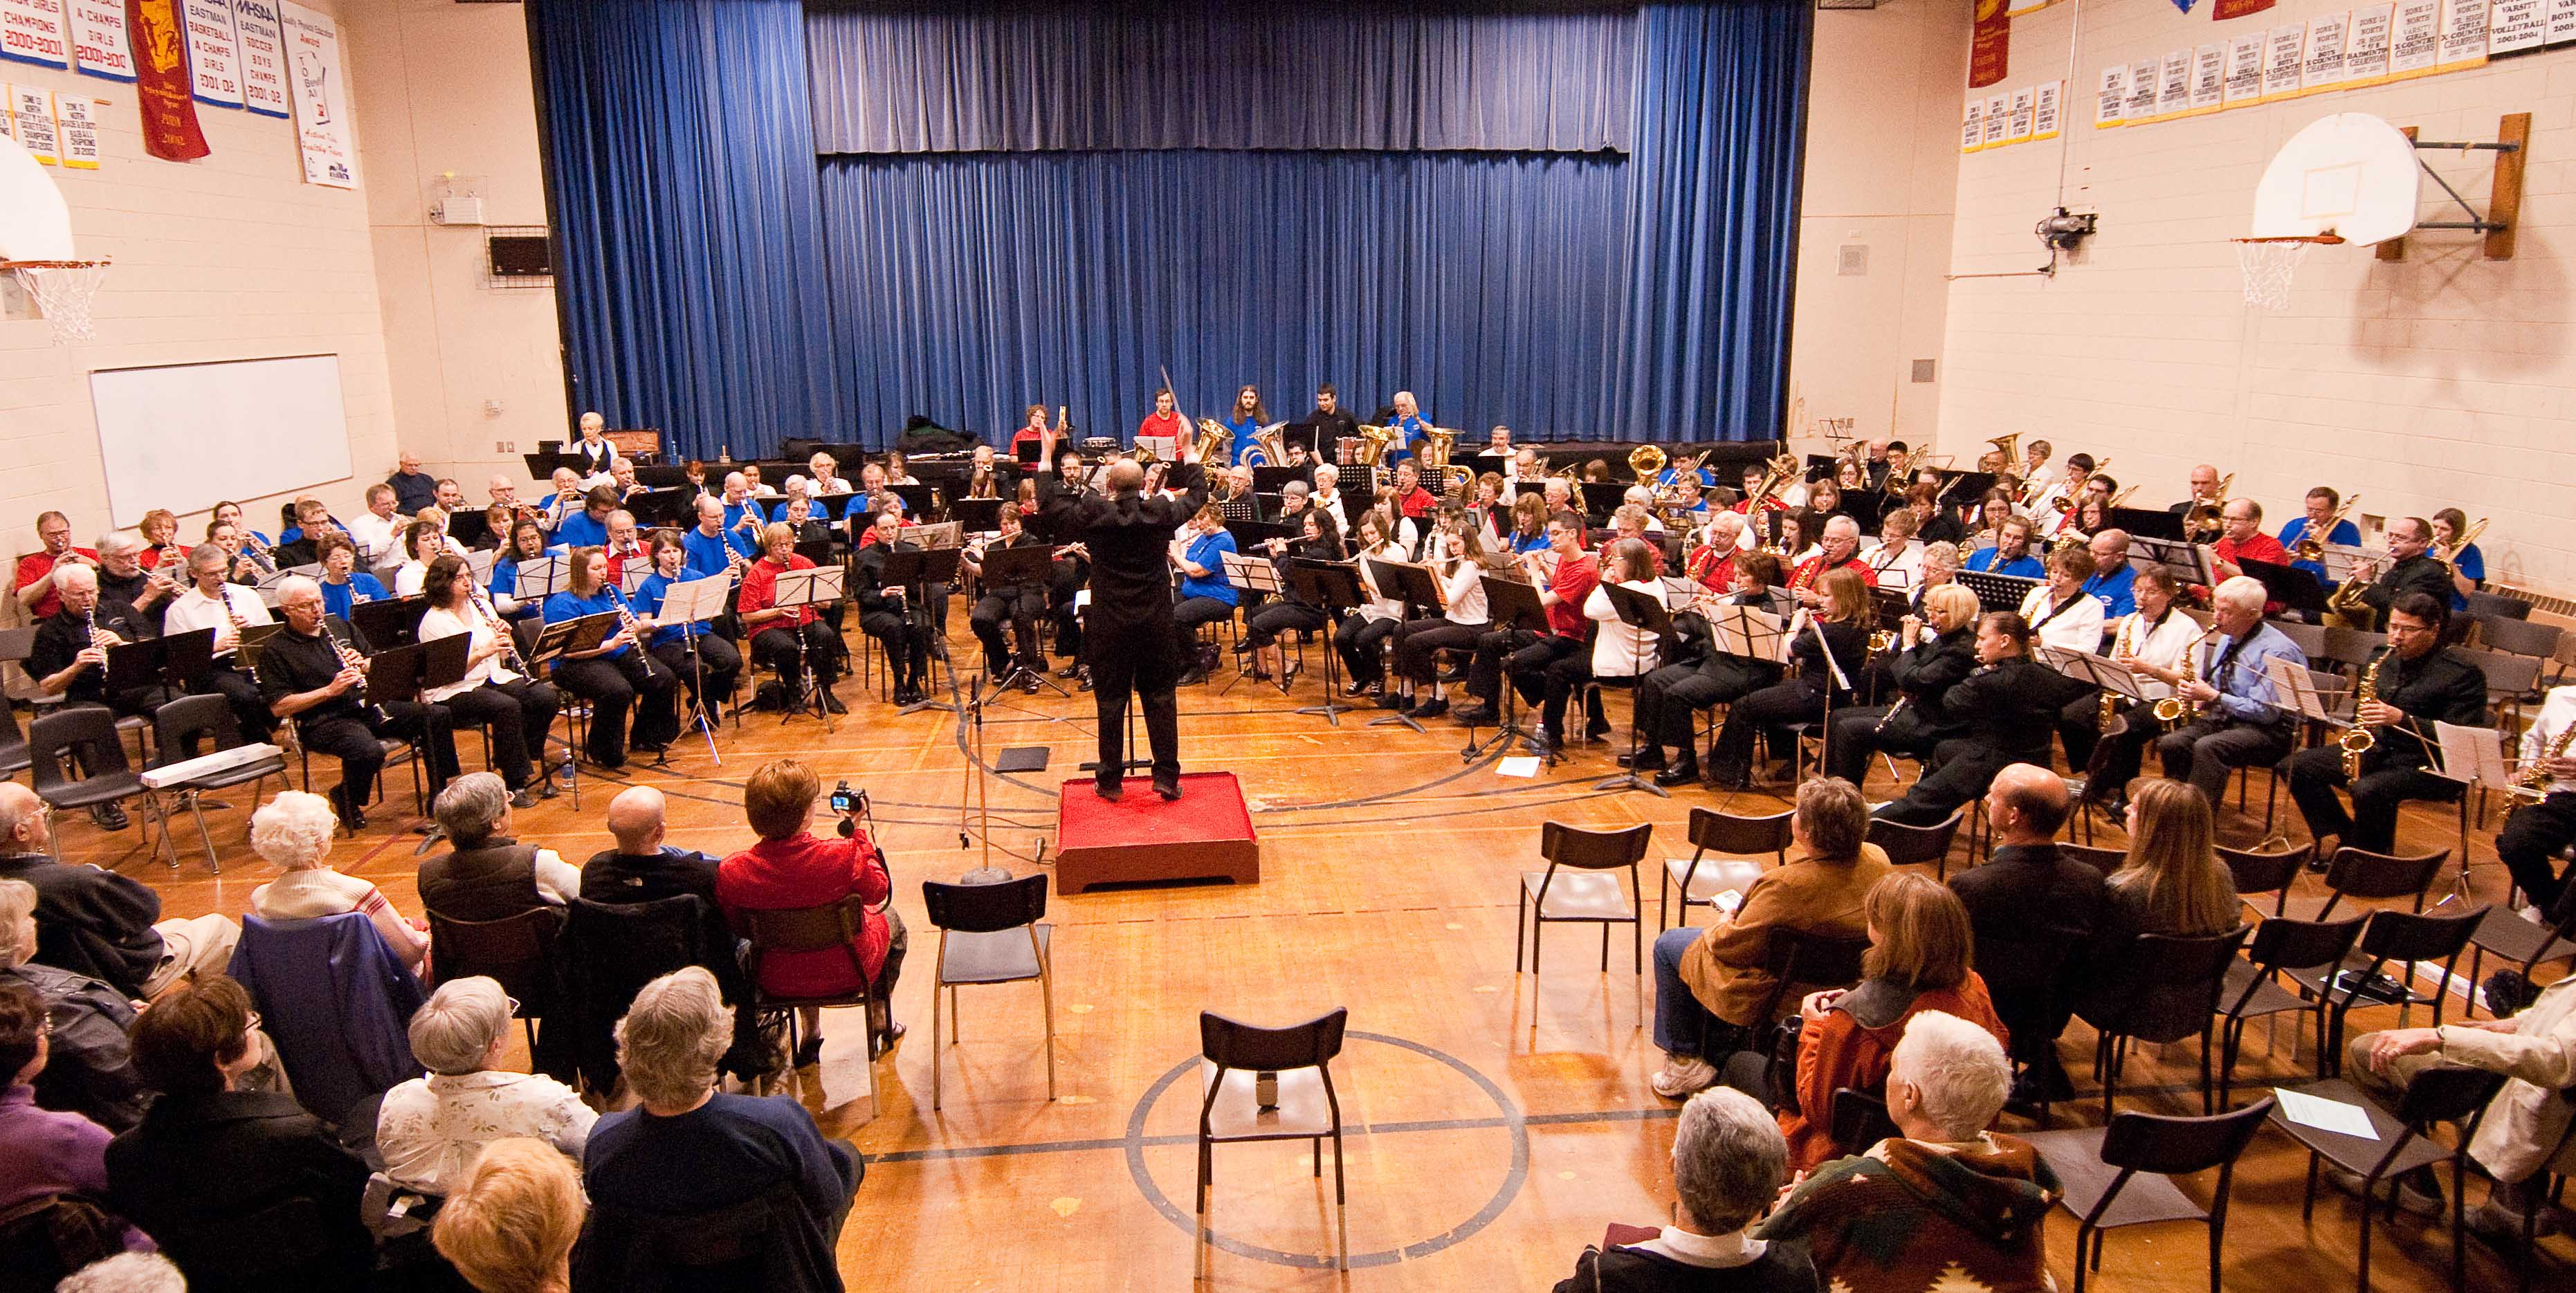 Community Massed Band by Stu Iverson